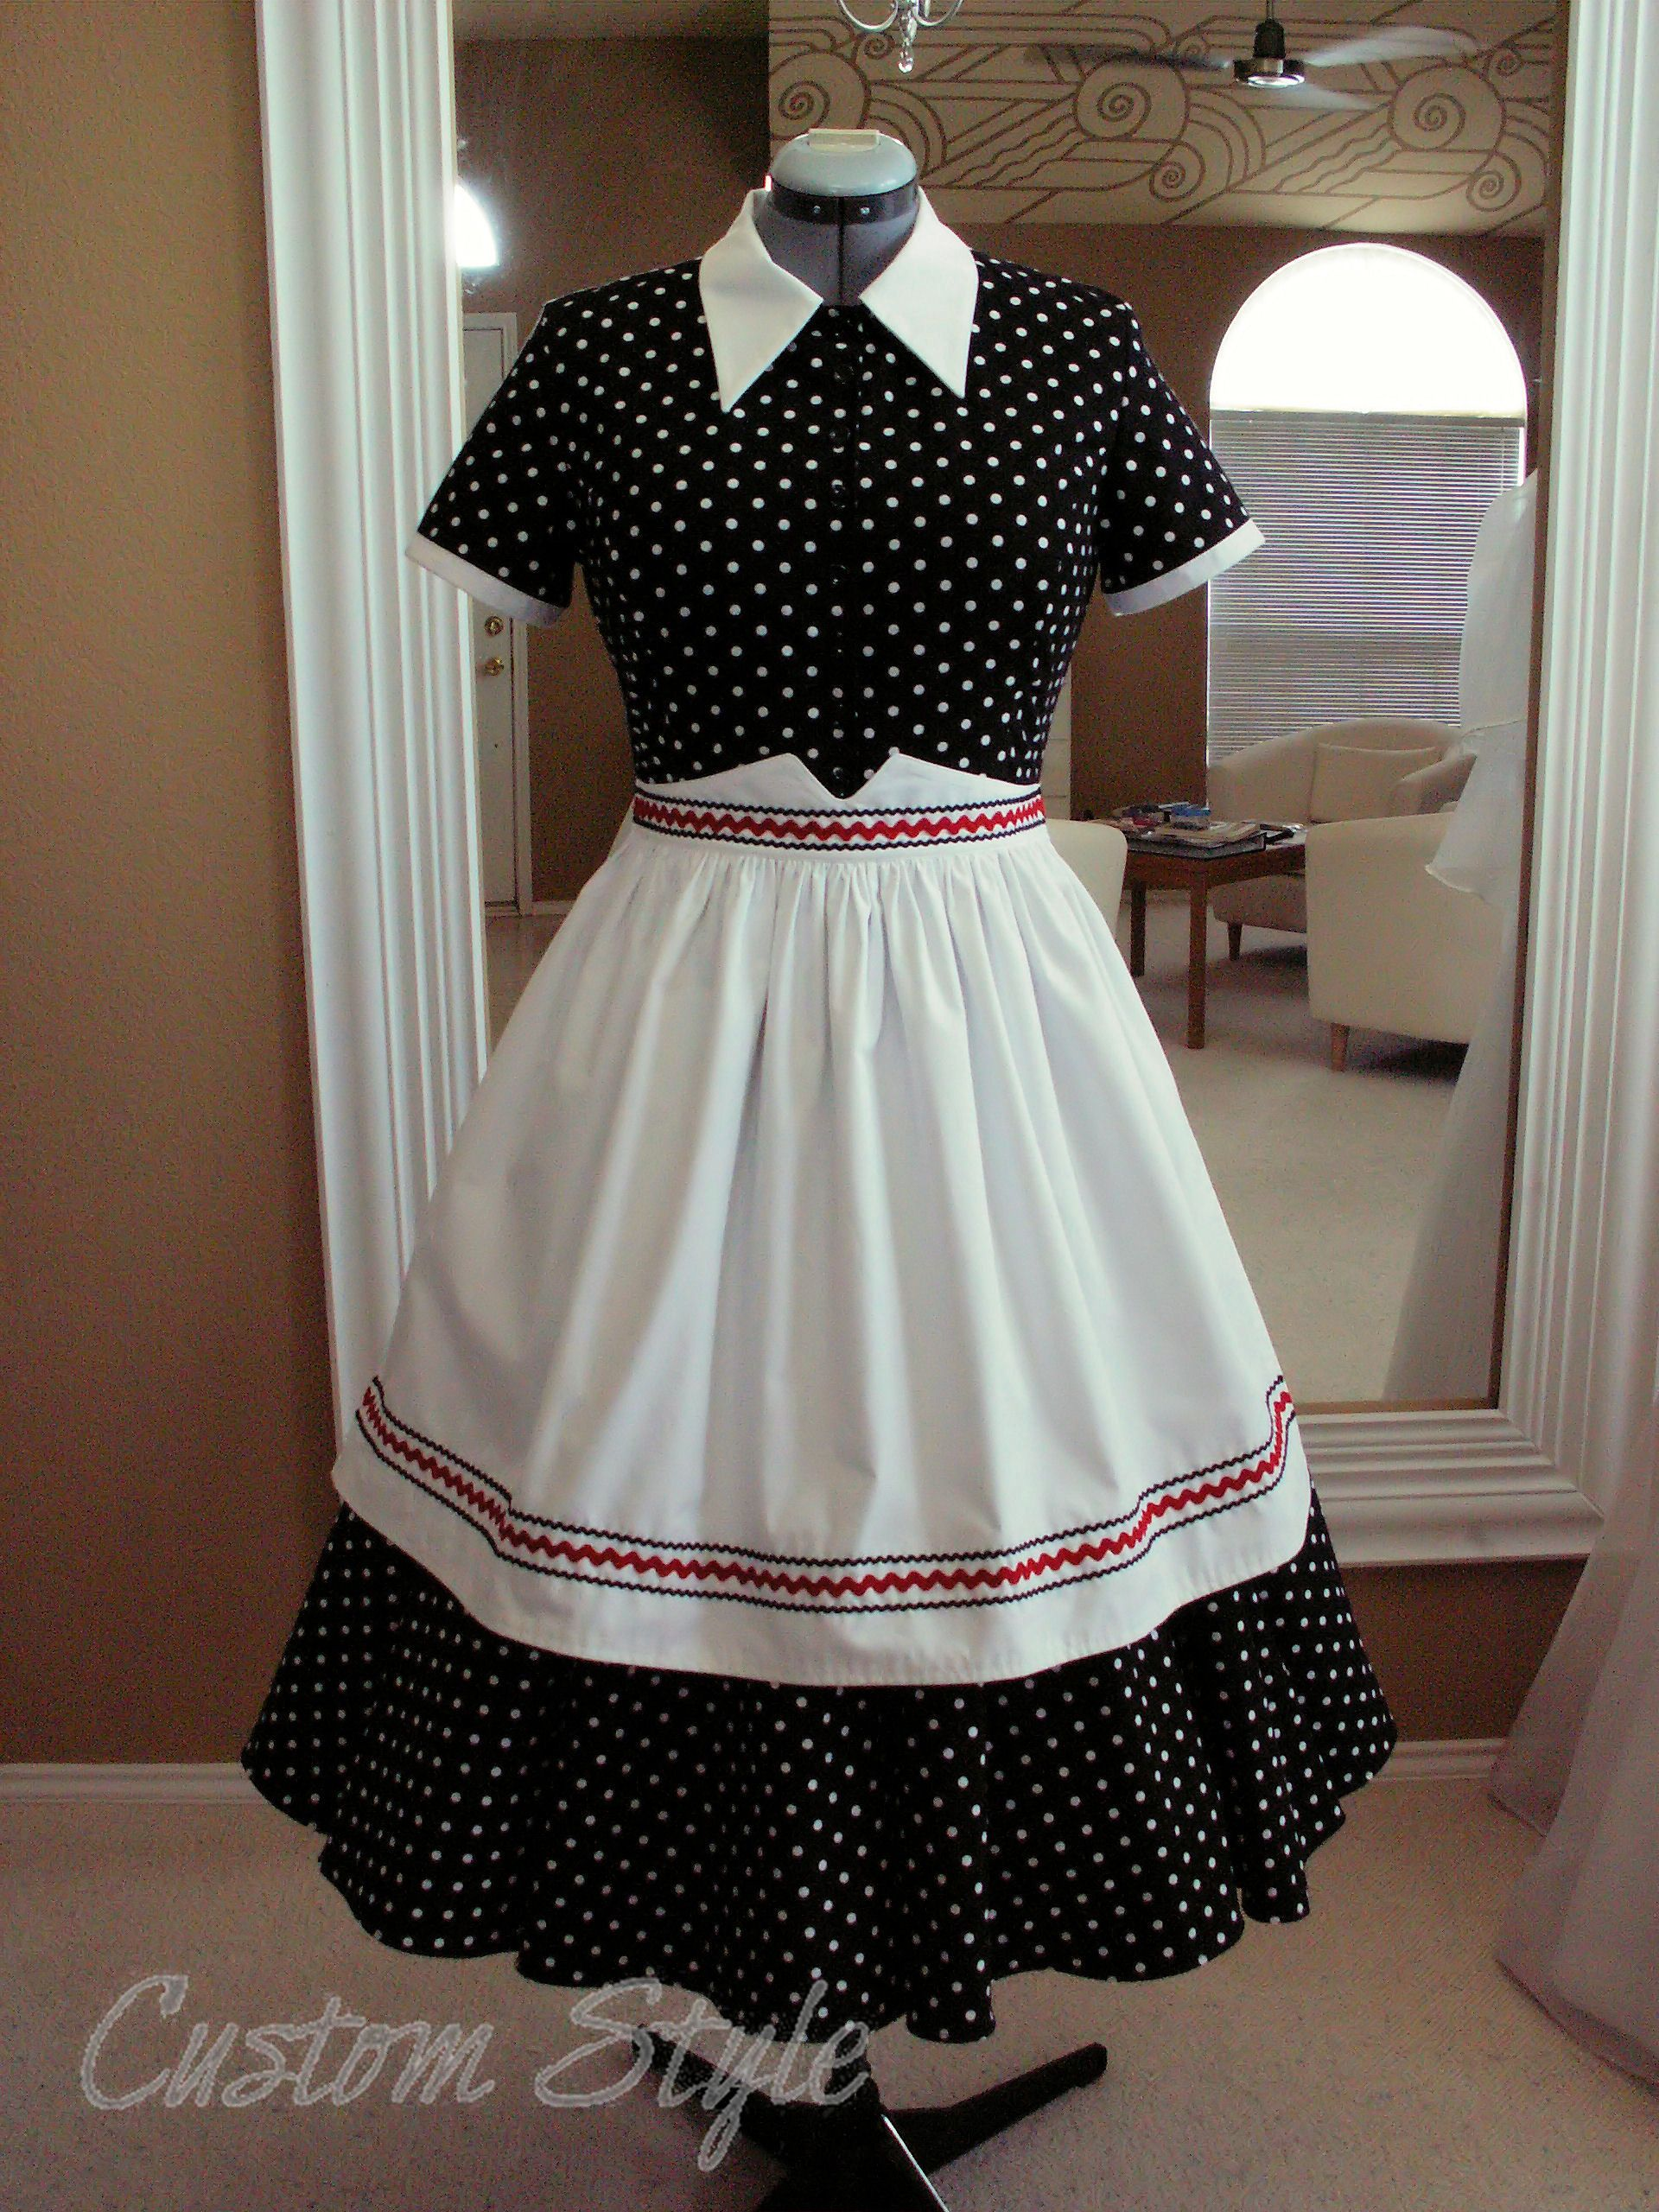 i love lucy black white polka dot dress with apron - I Love Lucy Halloween Costumes